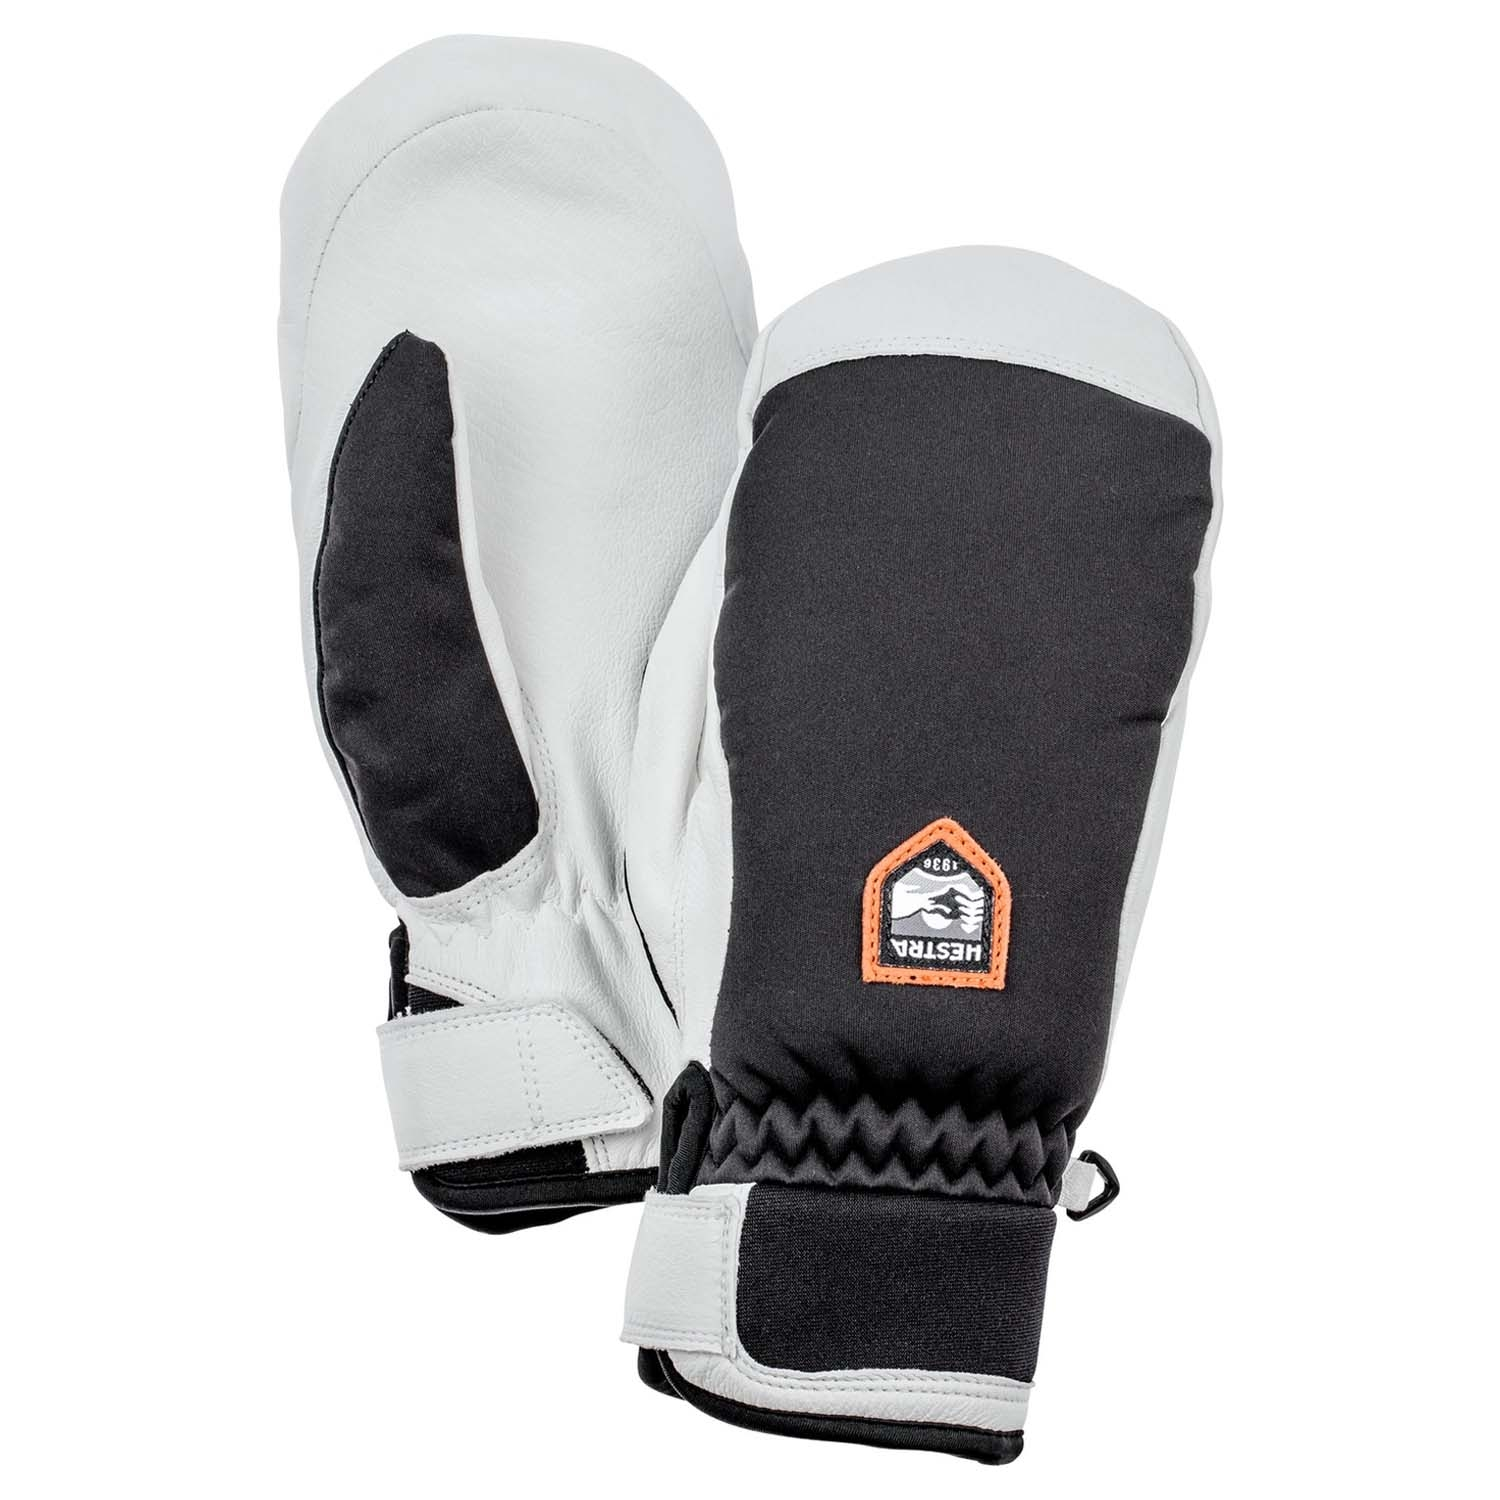 Hestra Womens Moje Czone Mitts Black 2021